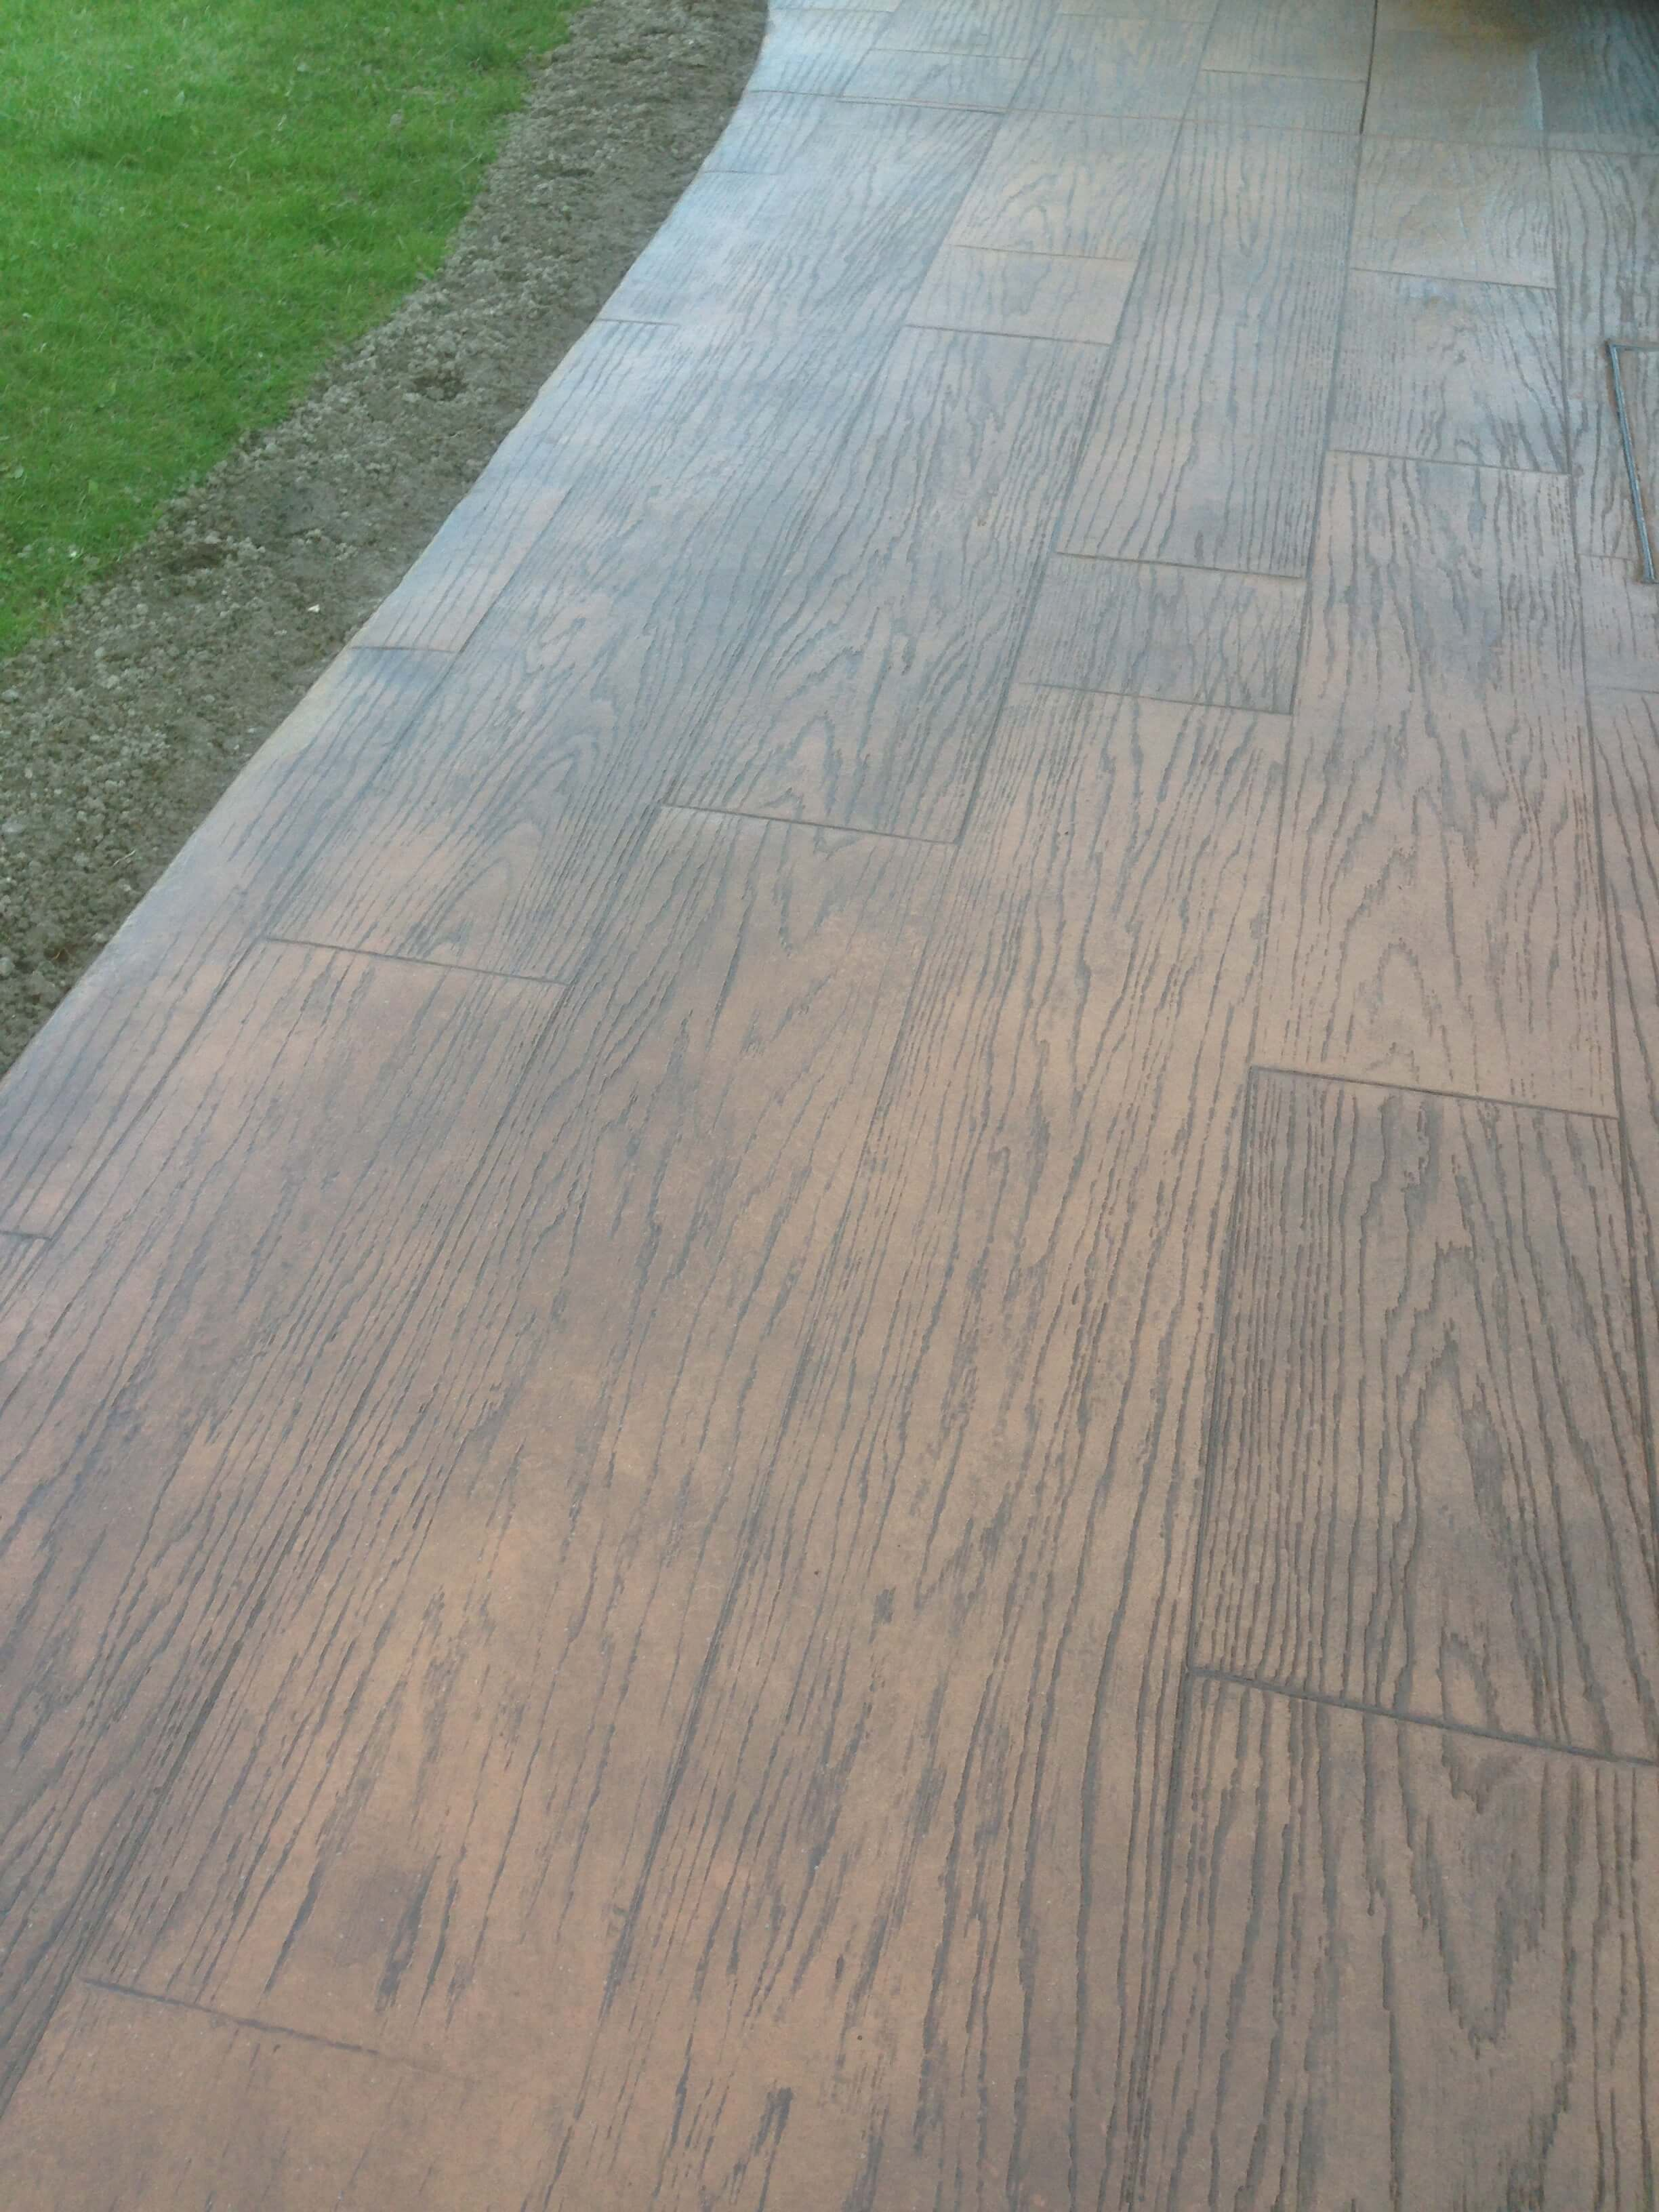 Wooden decking print on concrete patio